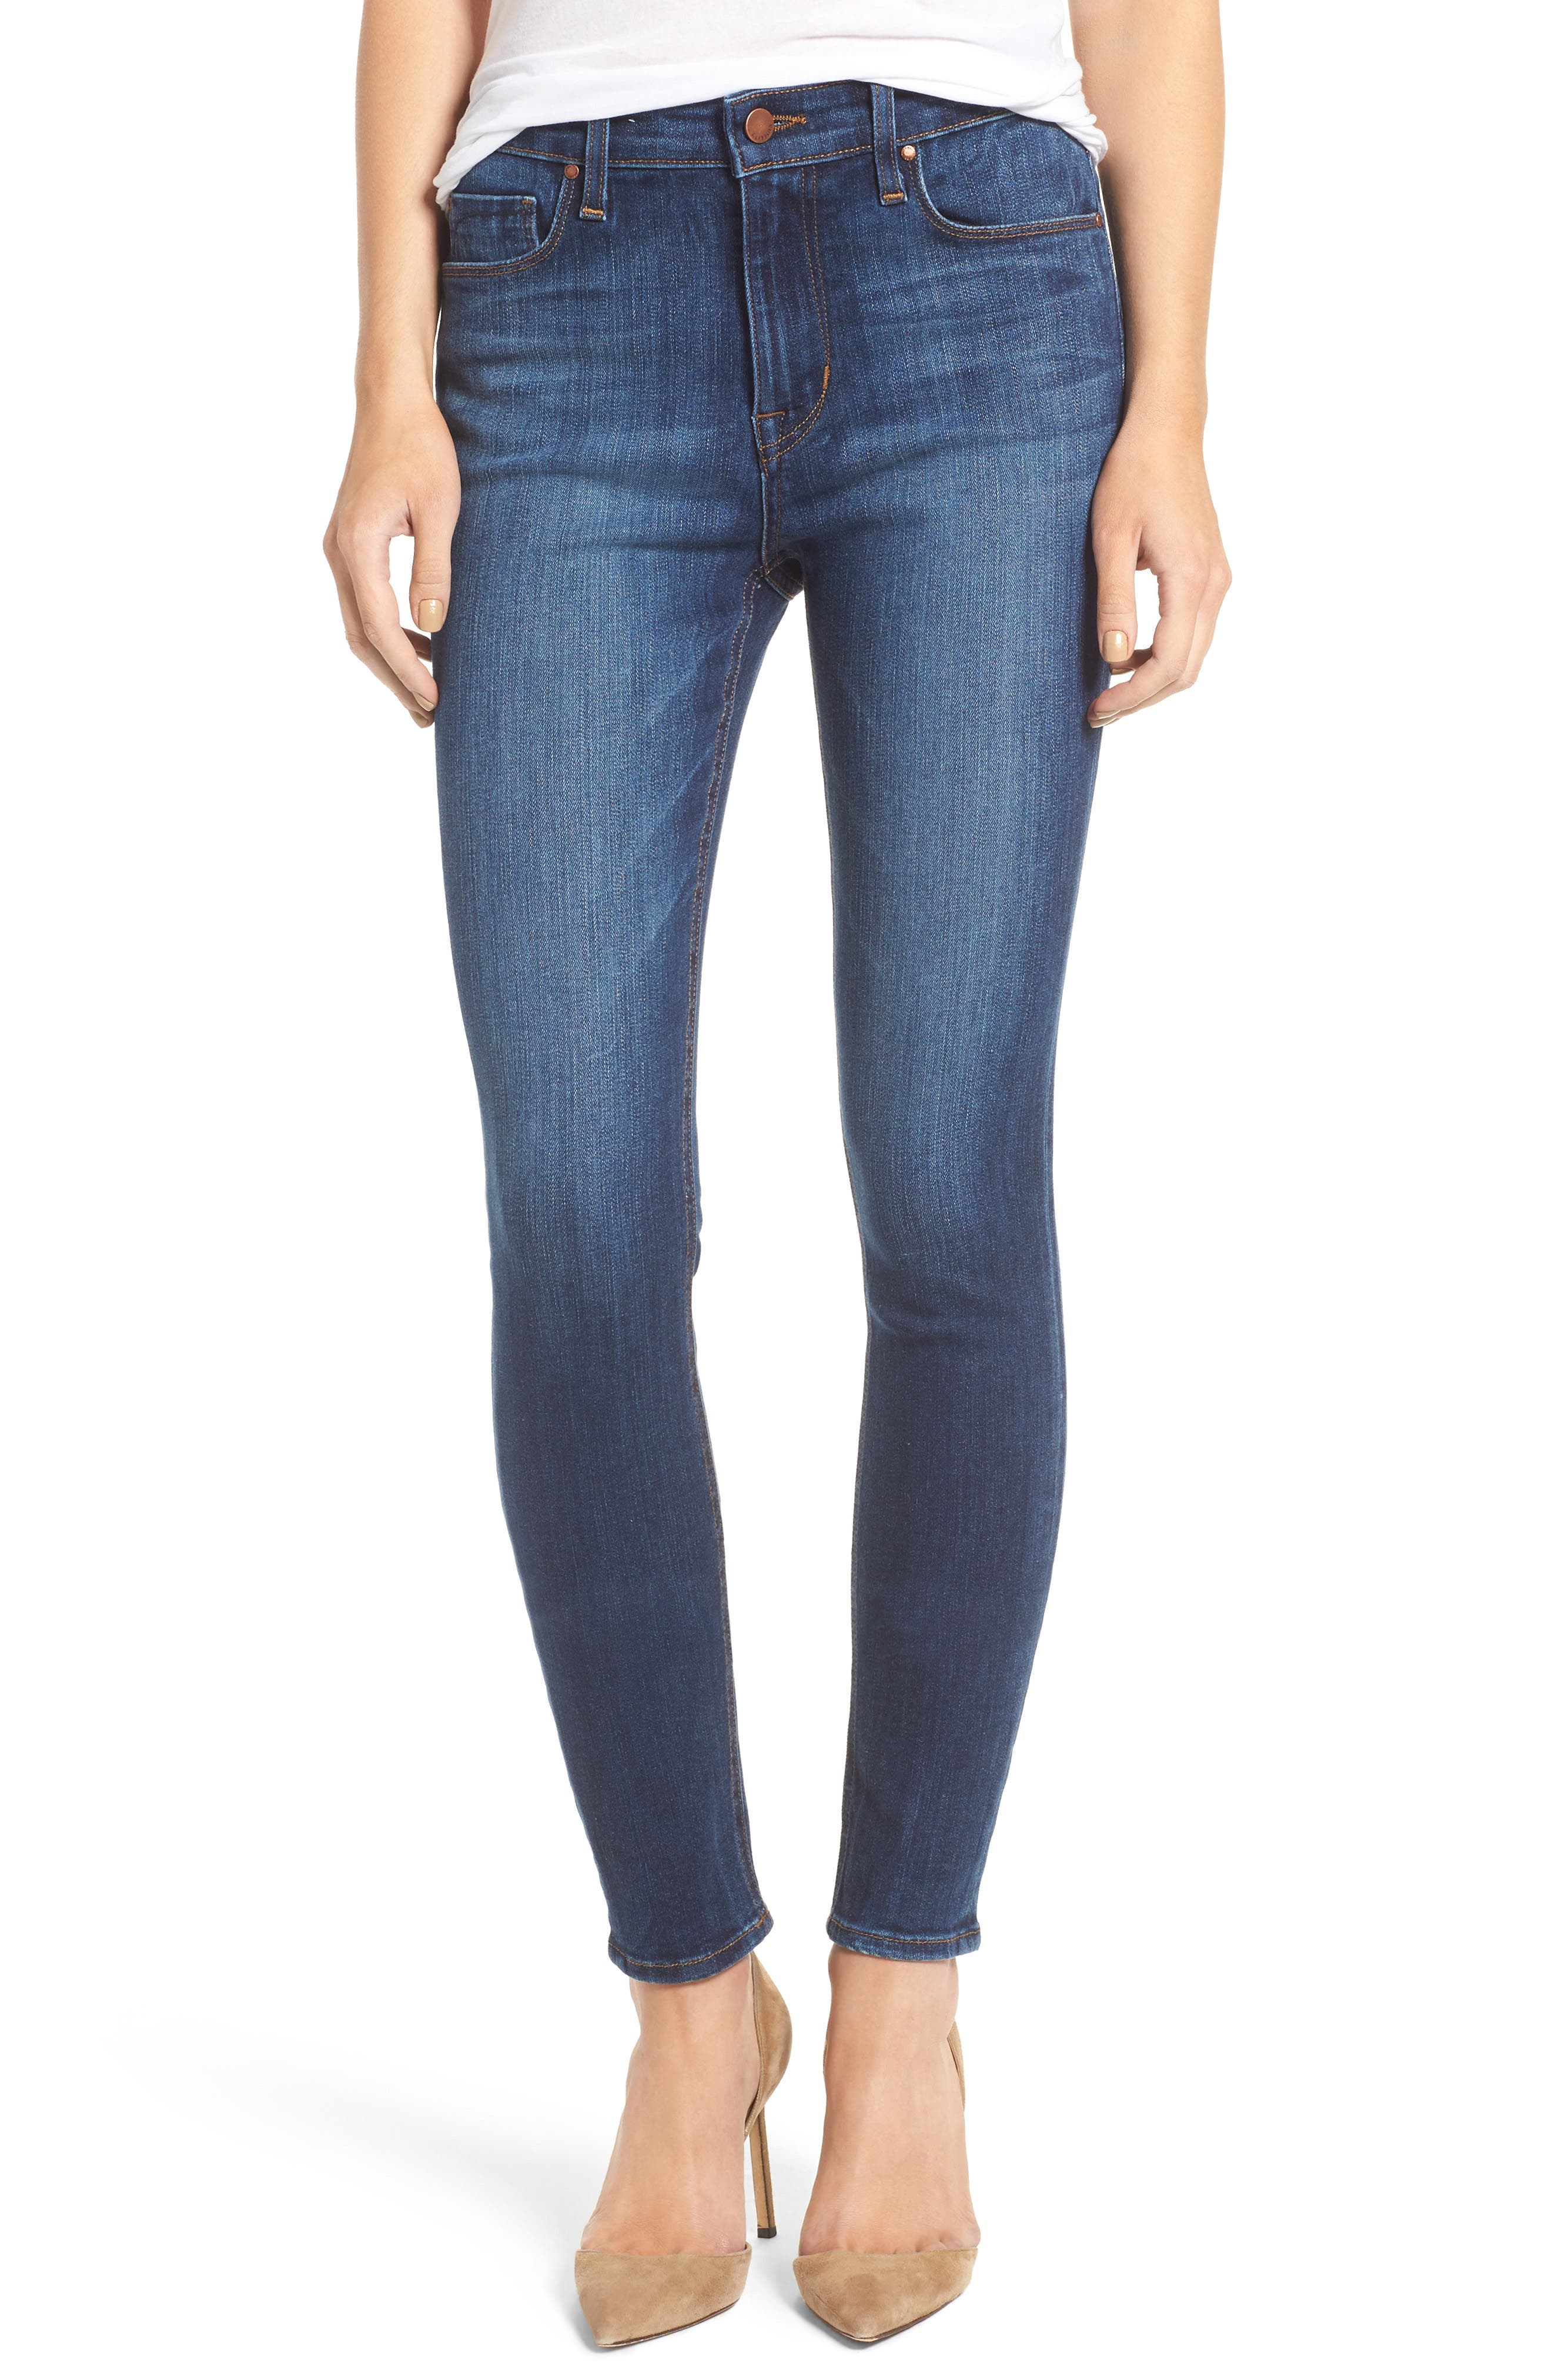 Gwen High Waist Skinny Jeans,                         Main,                         color, Liverpool